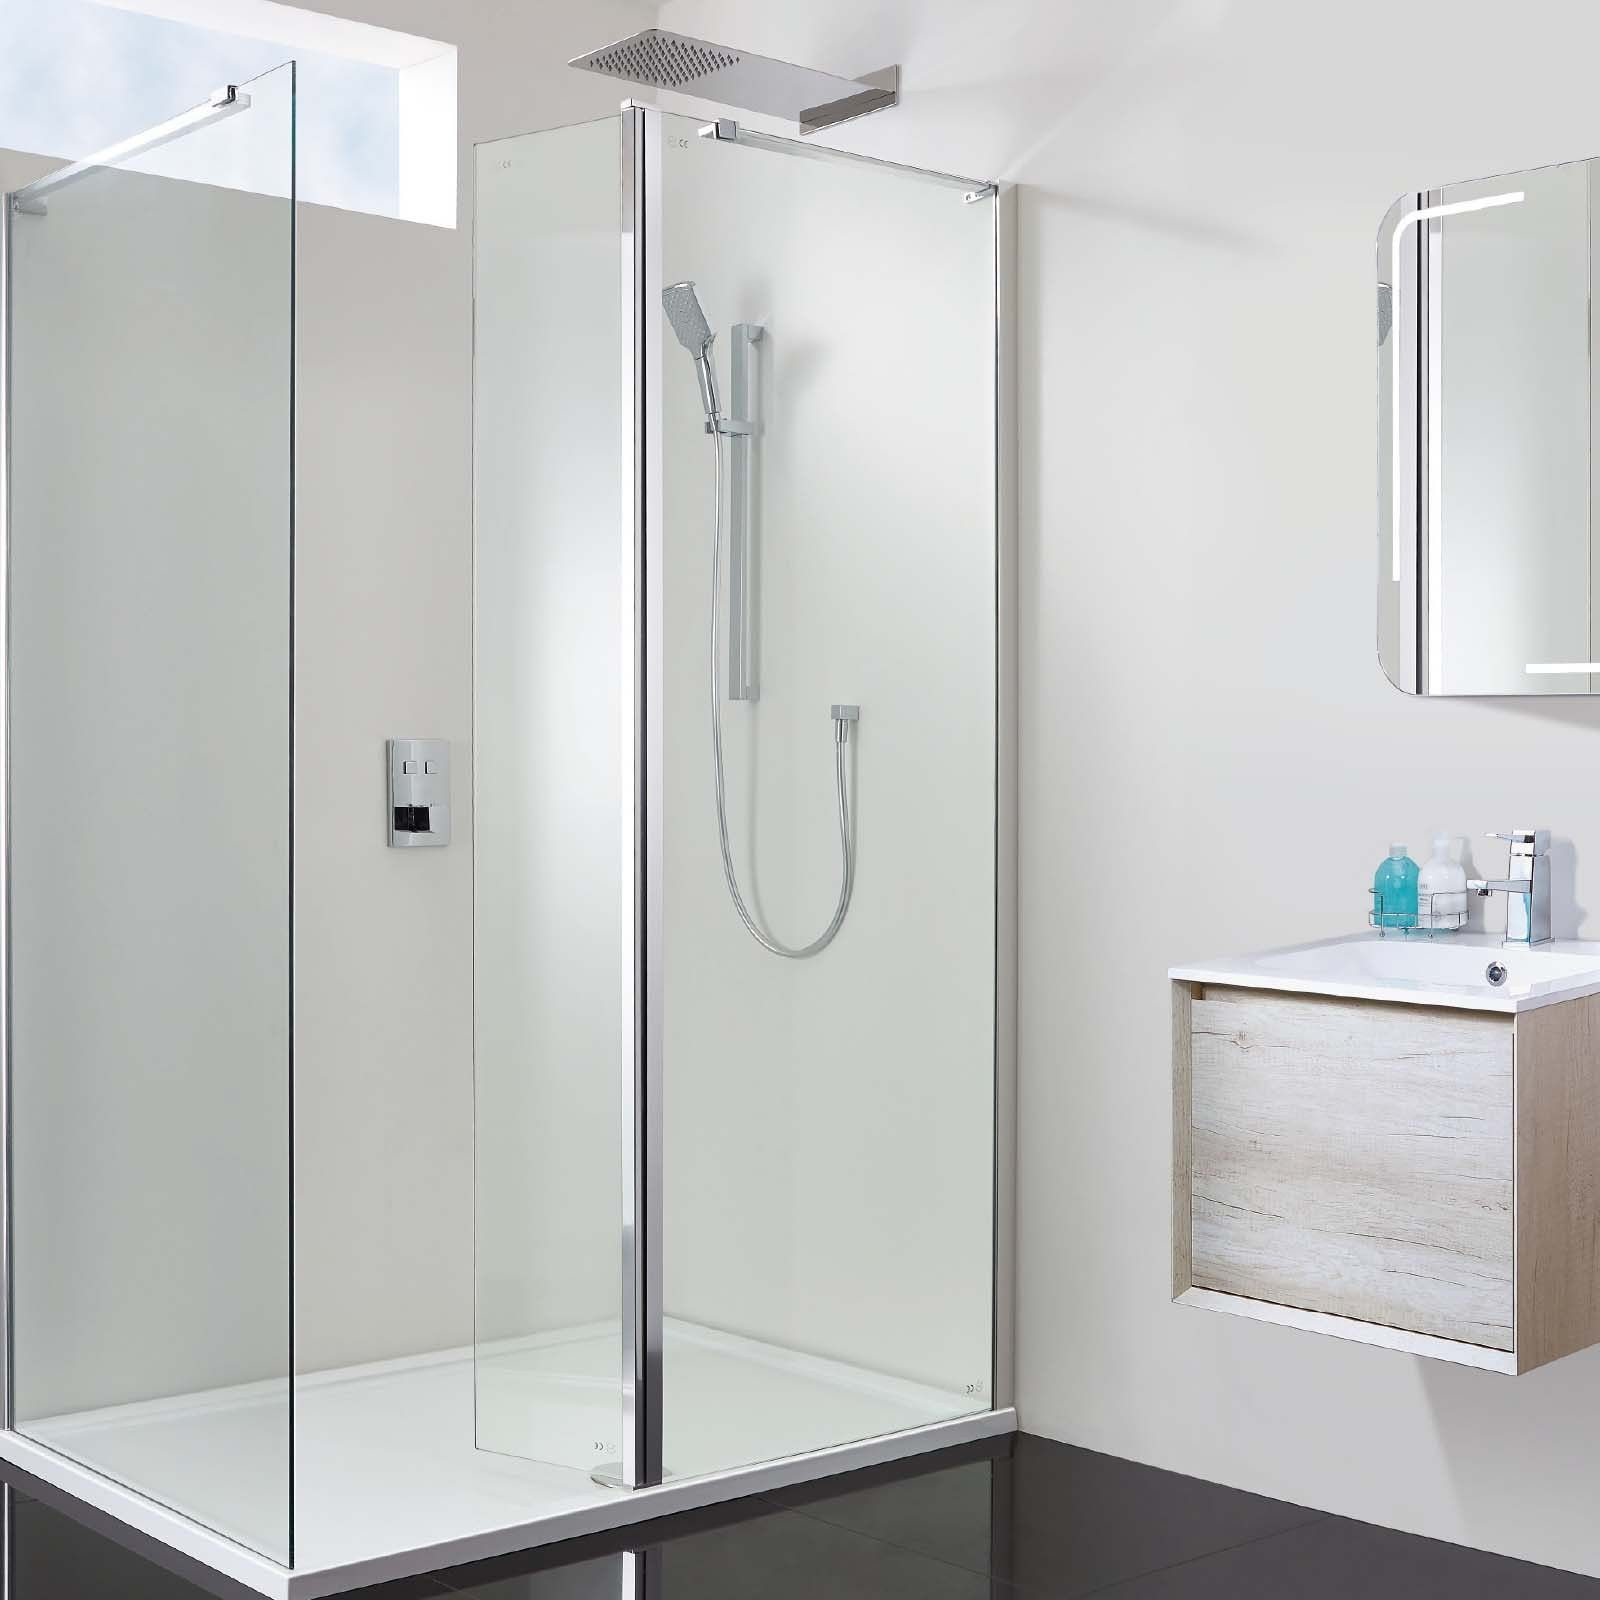 Vision 1400 X 800 10mm Hinged Walk In Shower Enclosure Inc Tray And Waste Shower Enclosure Walk In Shower Enclosures Frameless Shower Enclosures